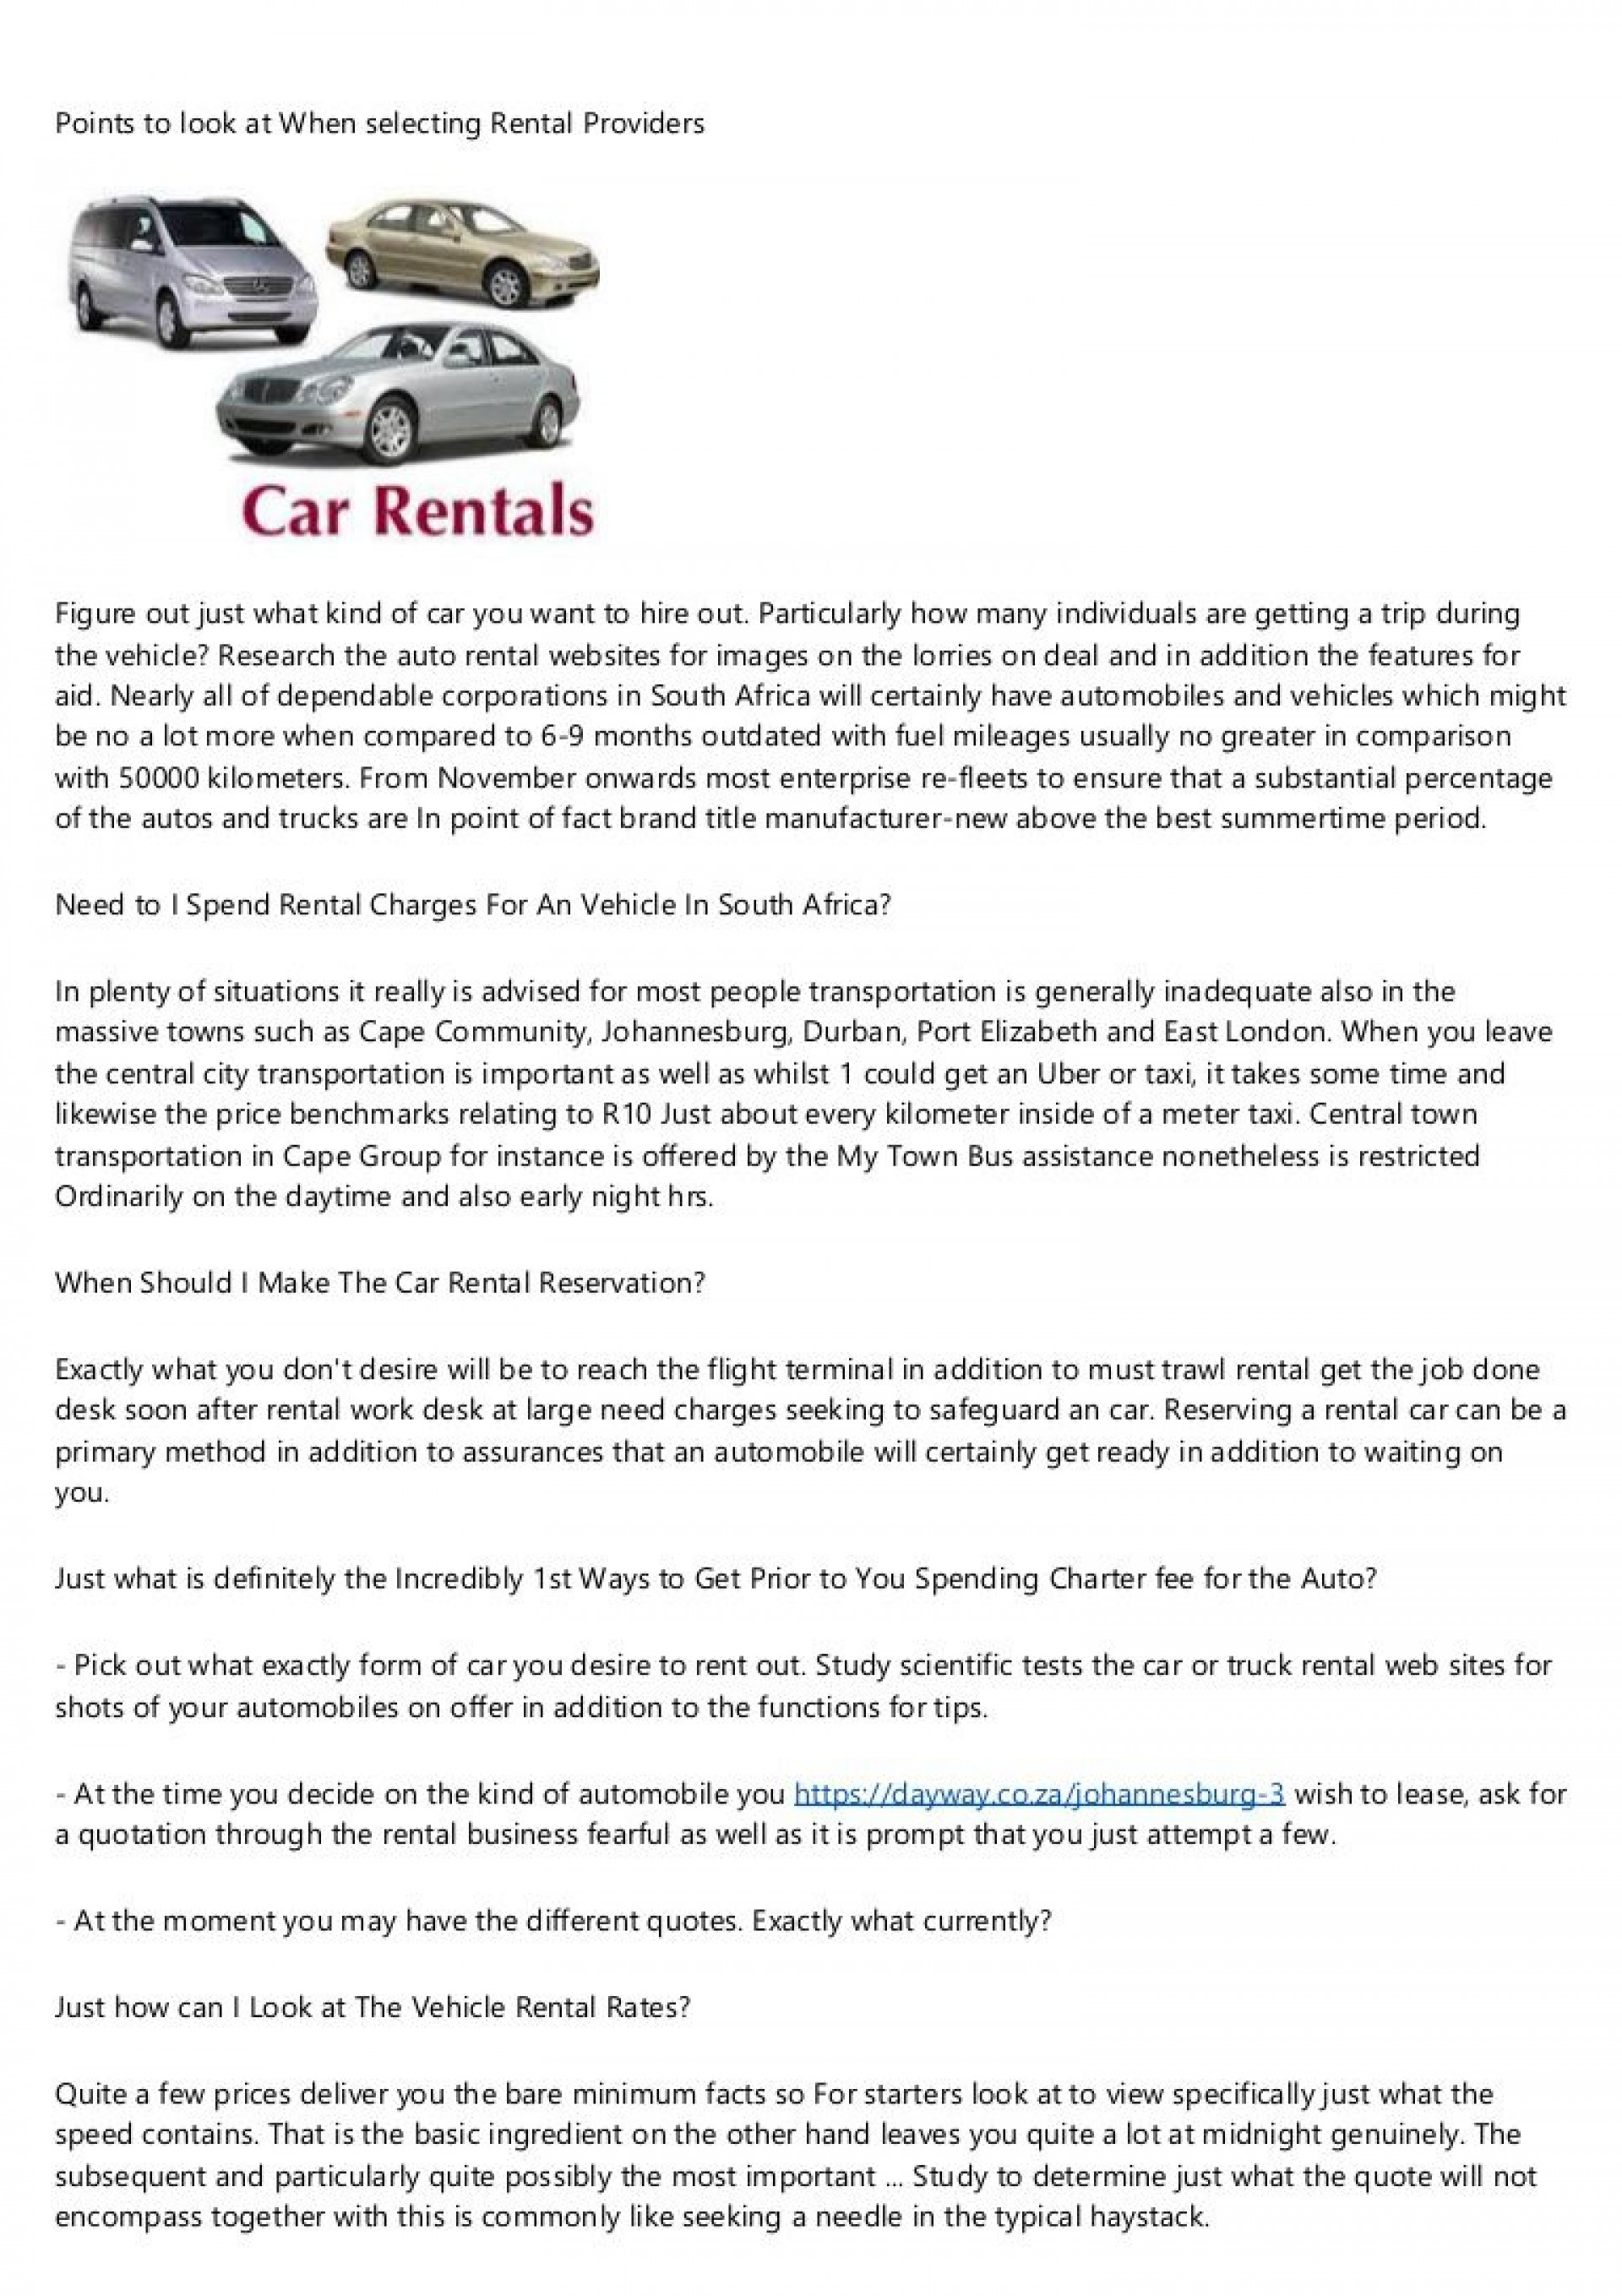 002 Fascinating Car Rental Agreement Template South Africa Example  Vehicle Contract1920